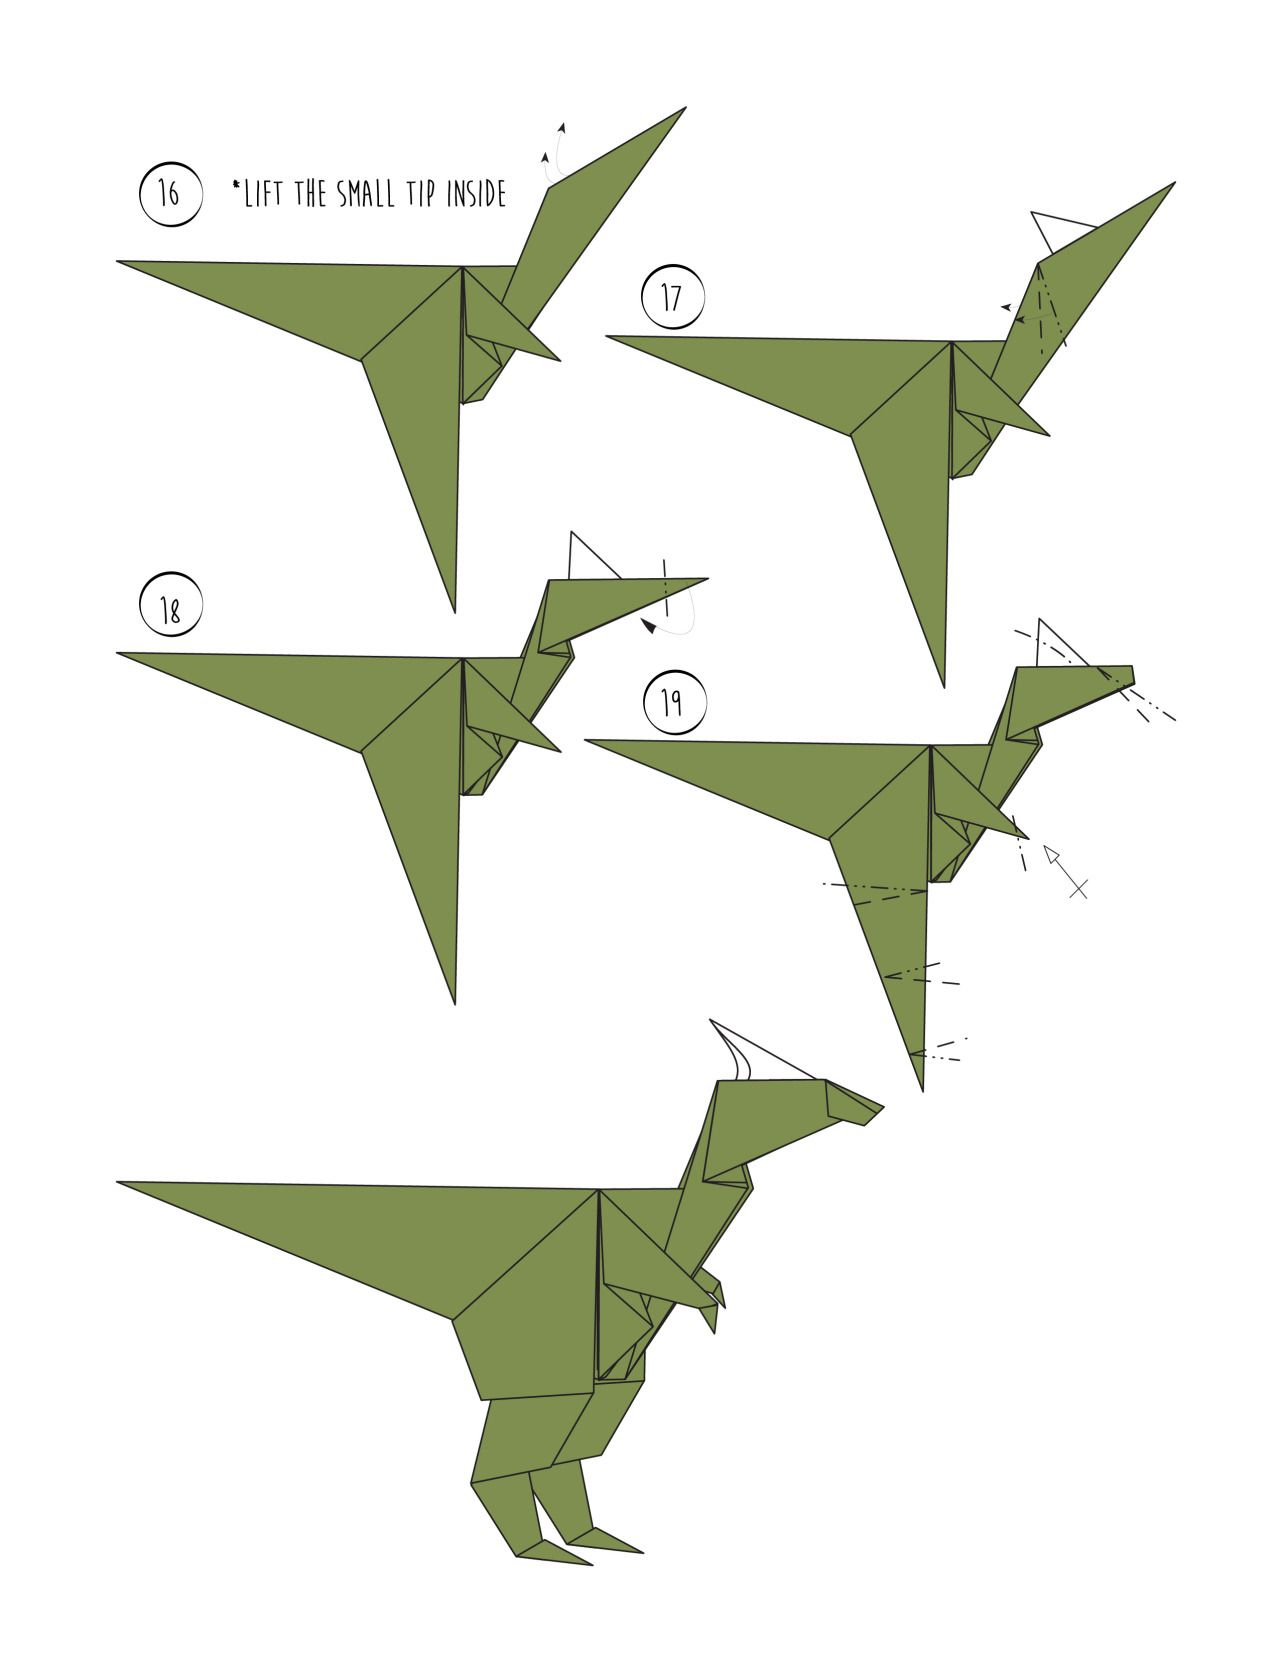 Rawr - Origami Dinosaur! And 2 More Ways to Make an Origami Dinosaur. #dinosaur